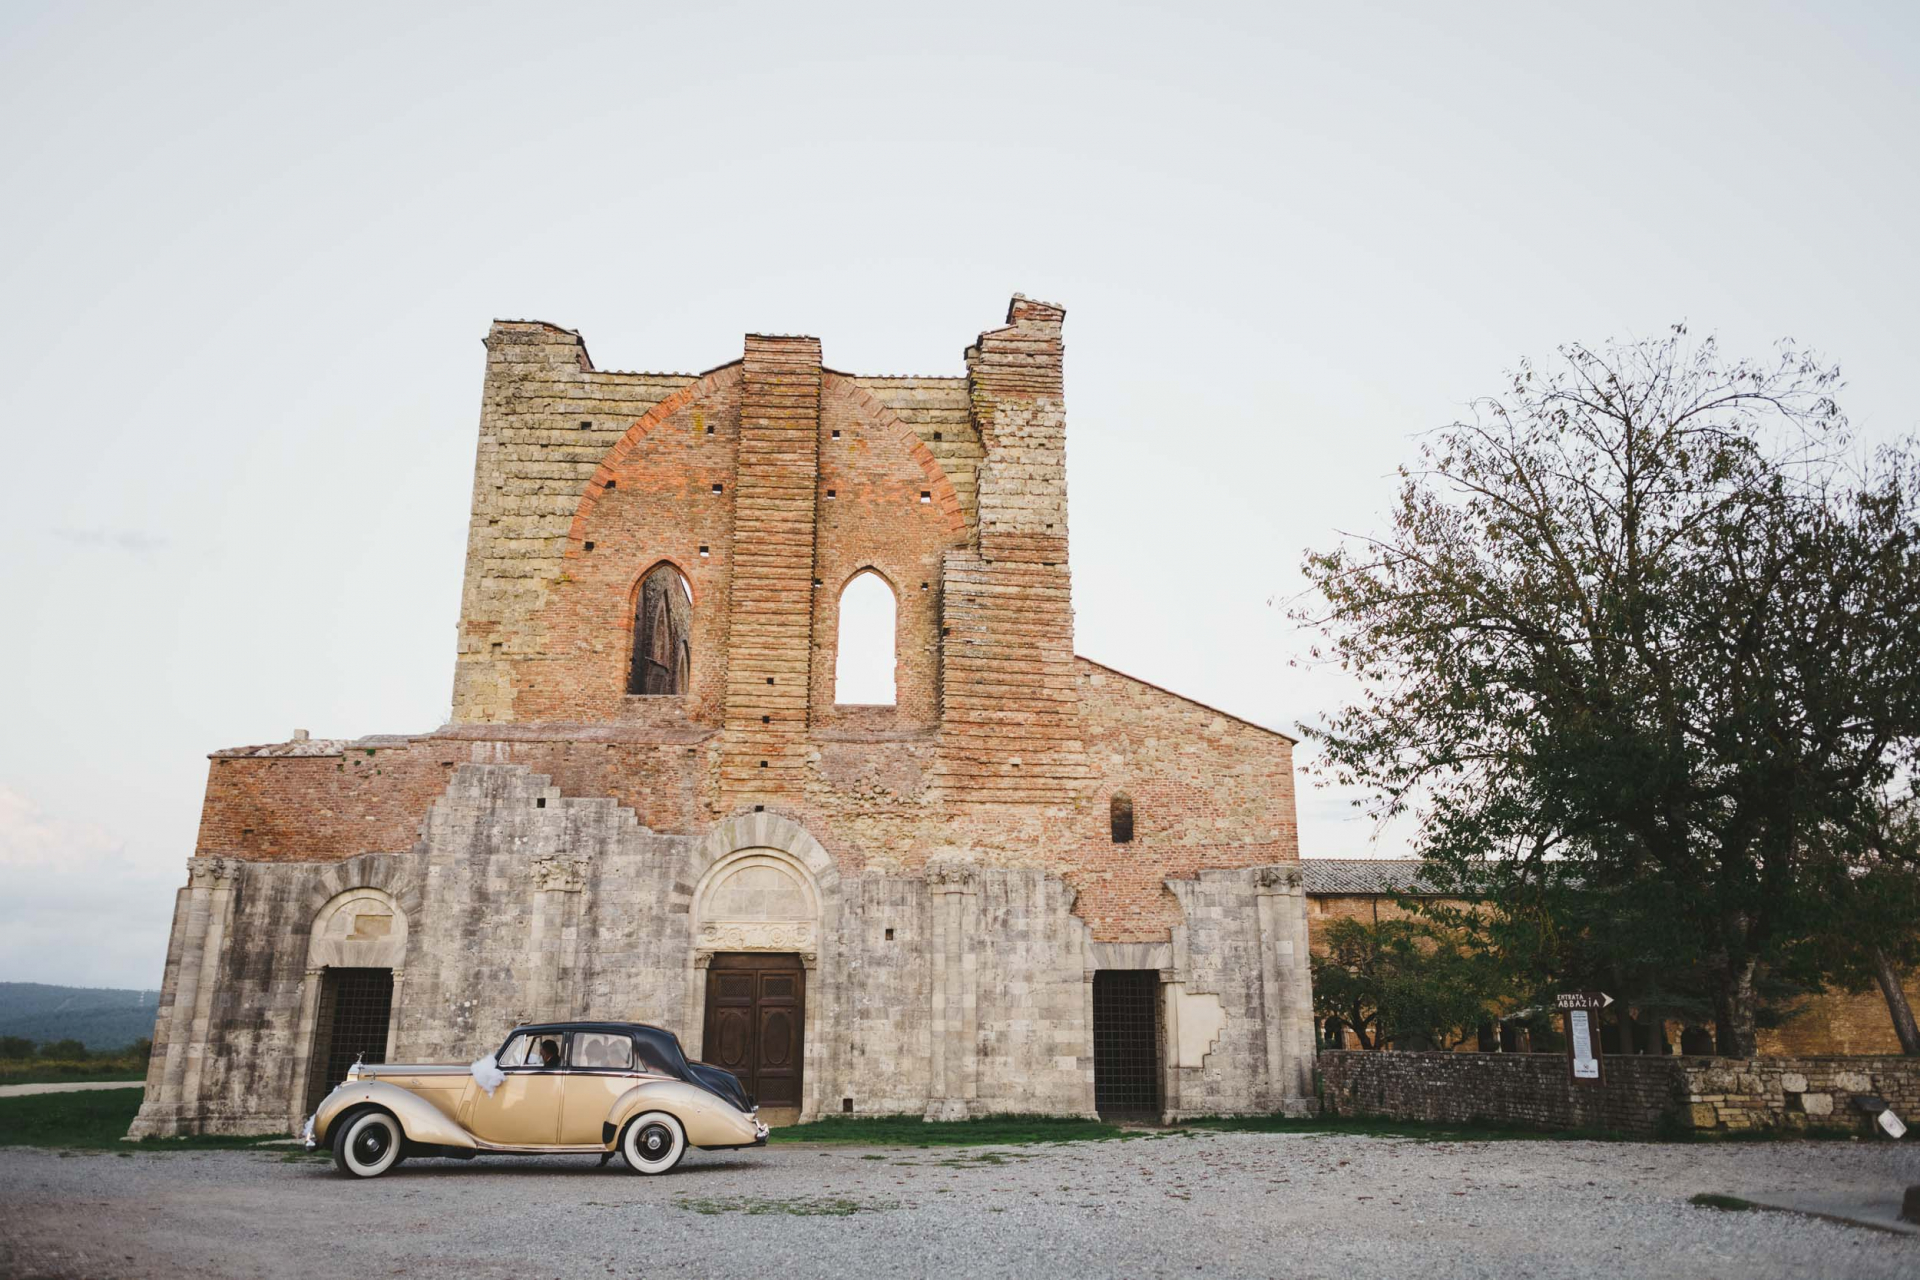 San Galgano Abbey Elopement Photographer - Tuscany   The intriguing architecture of the Abbey appears to be appropriate and picturesque